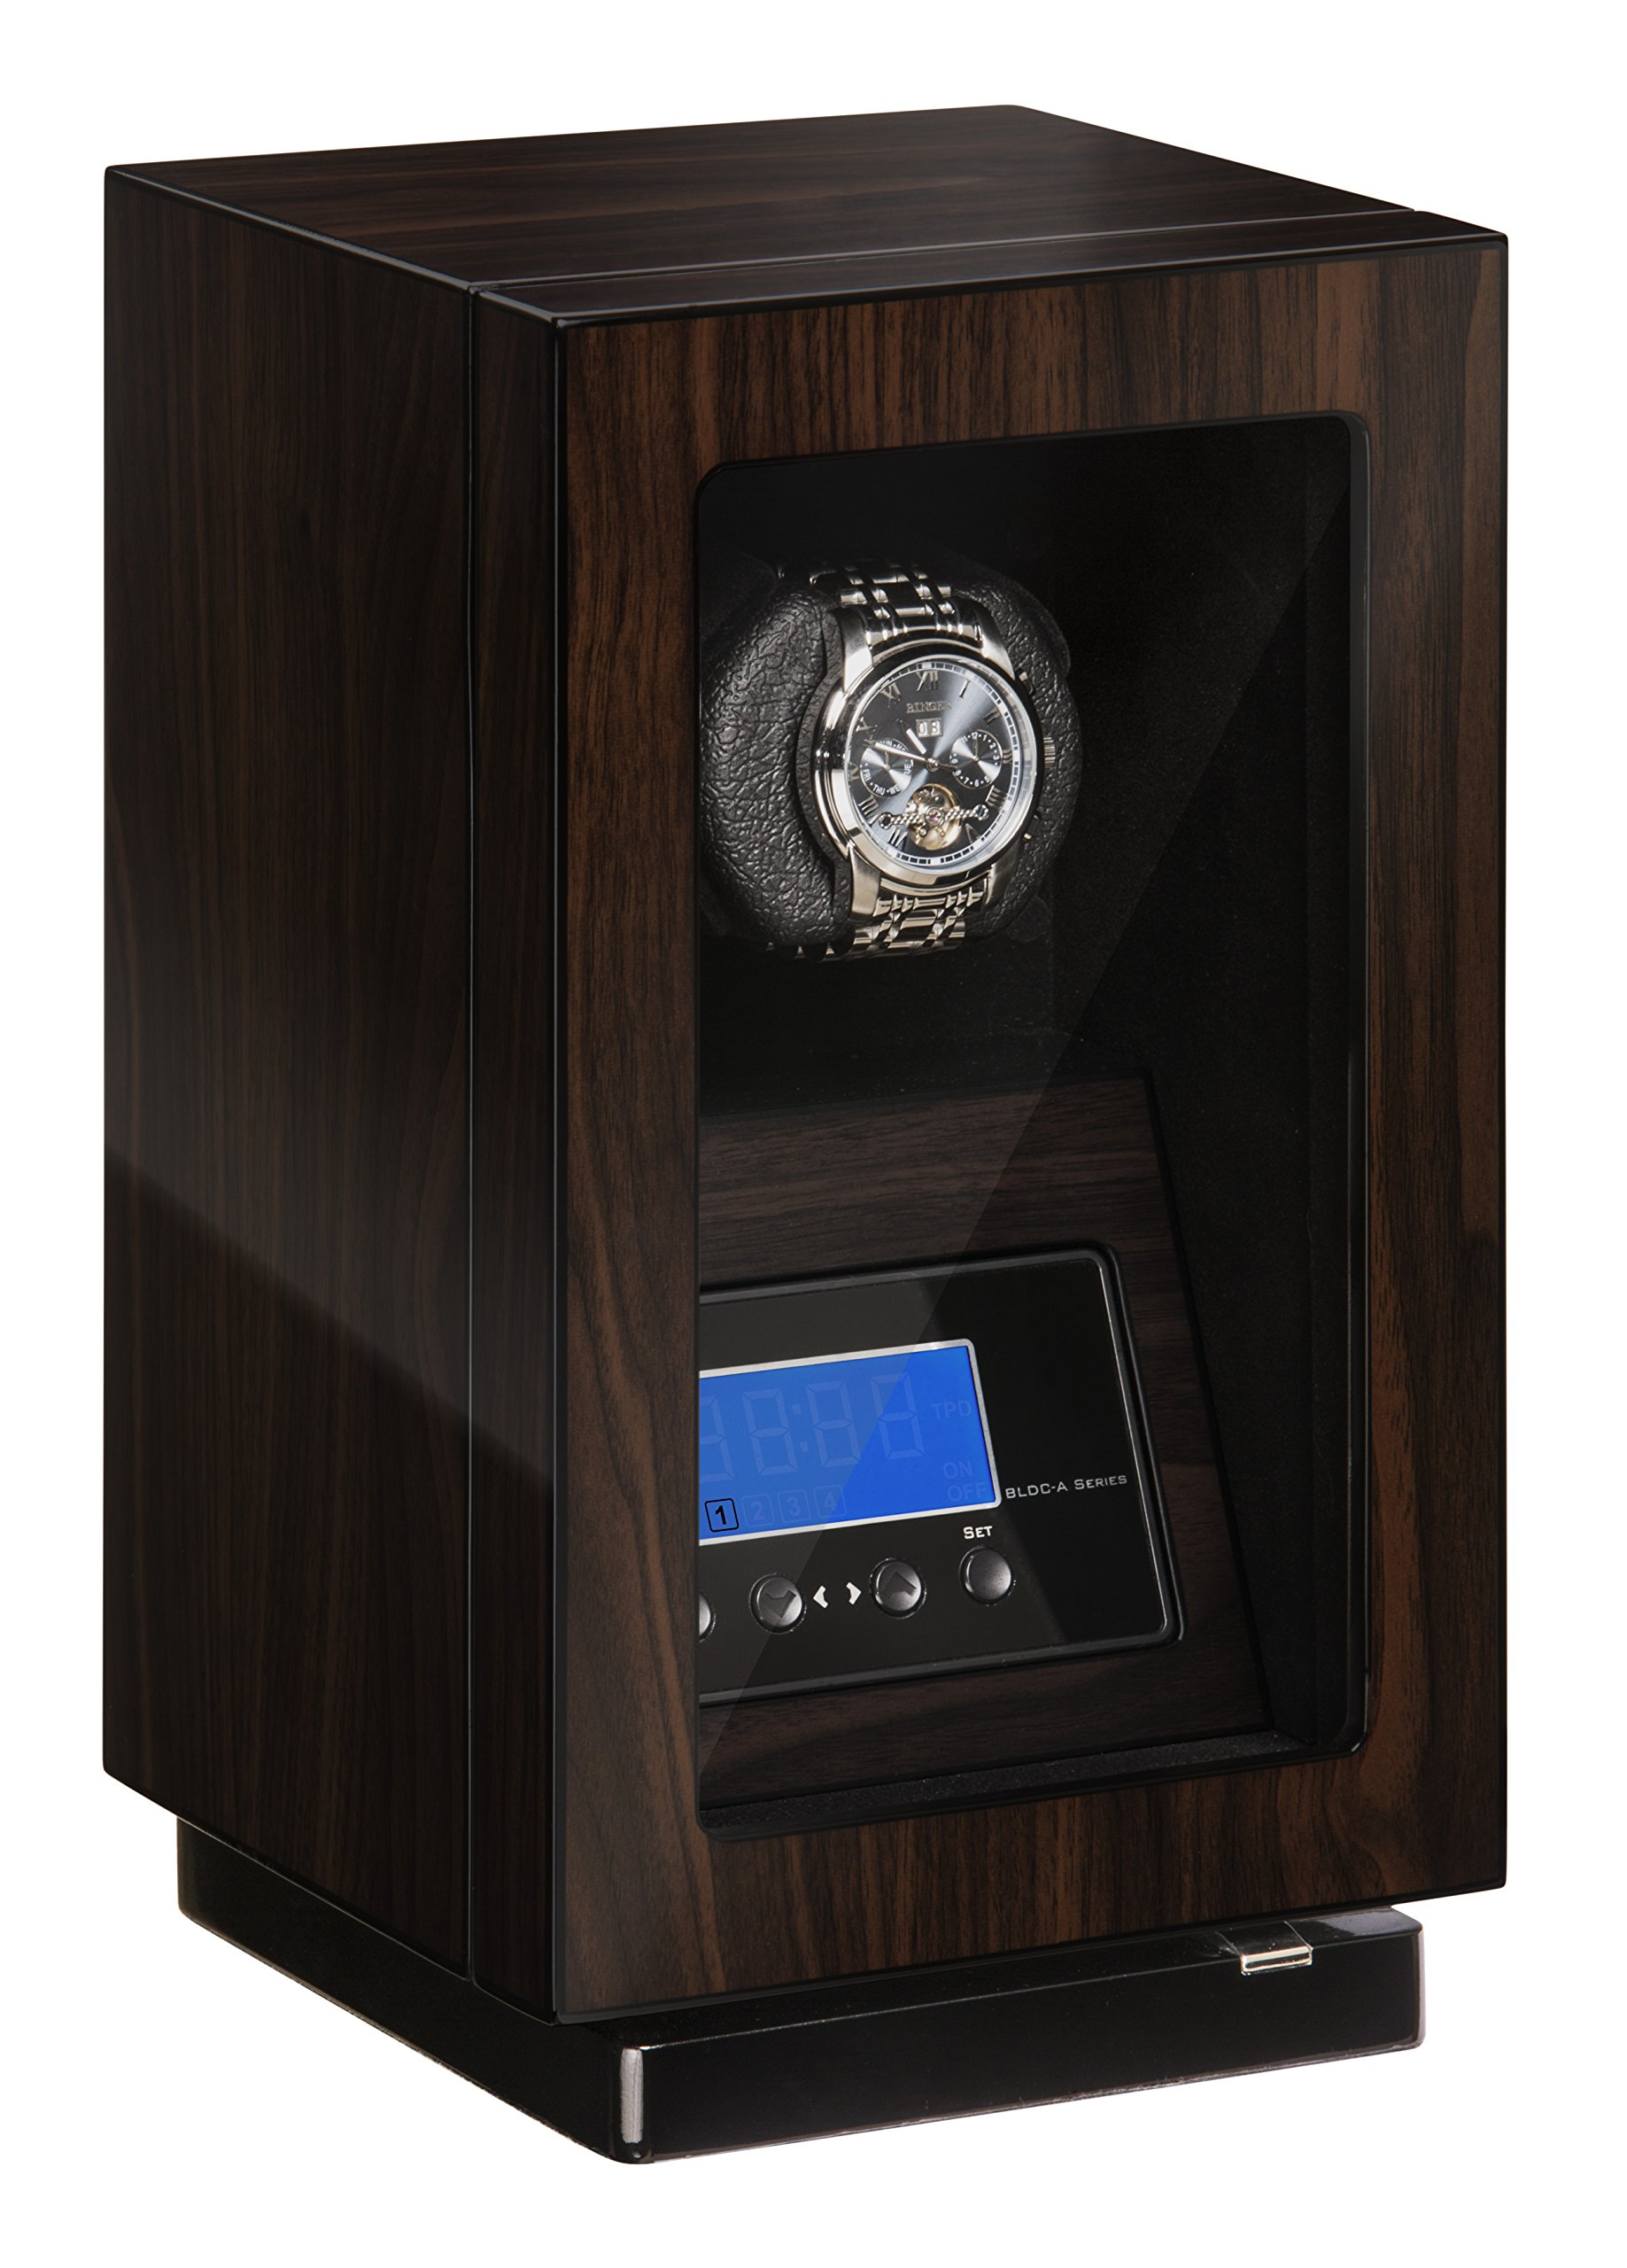 BOXY Automatic Single Watch Winder with Brushless DC (BLDC) Motor